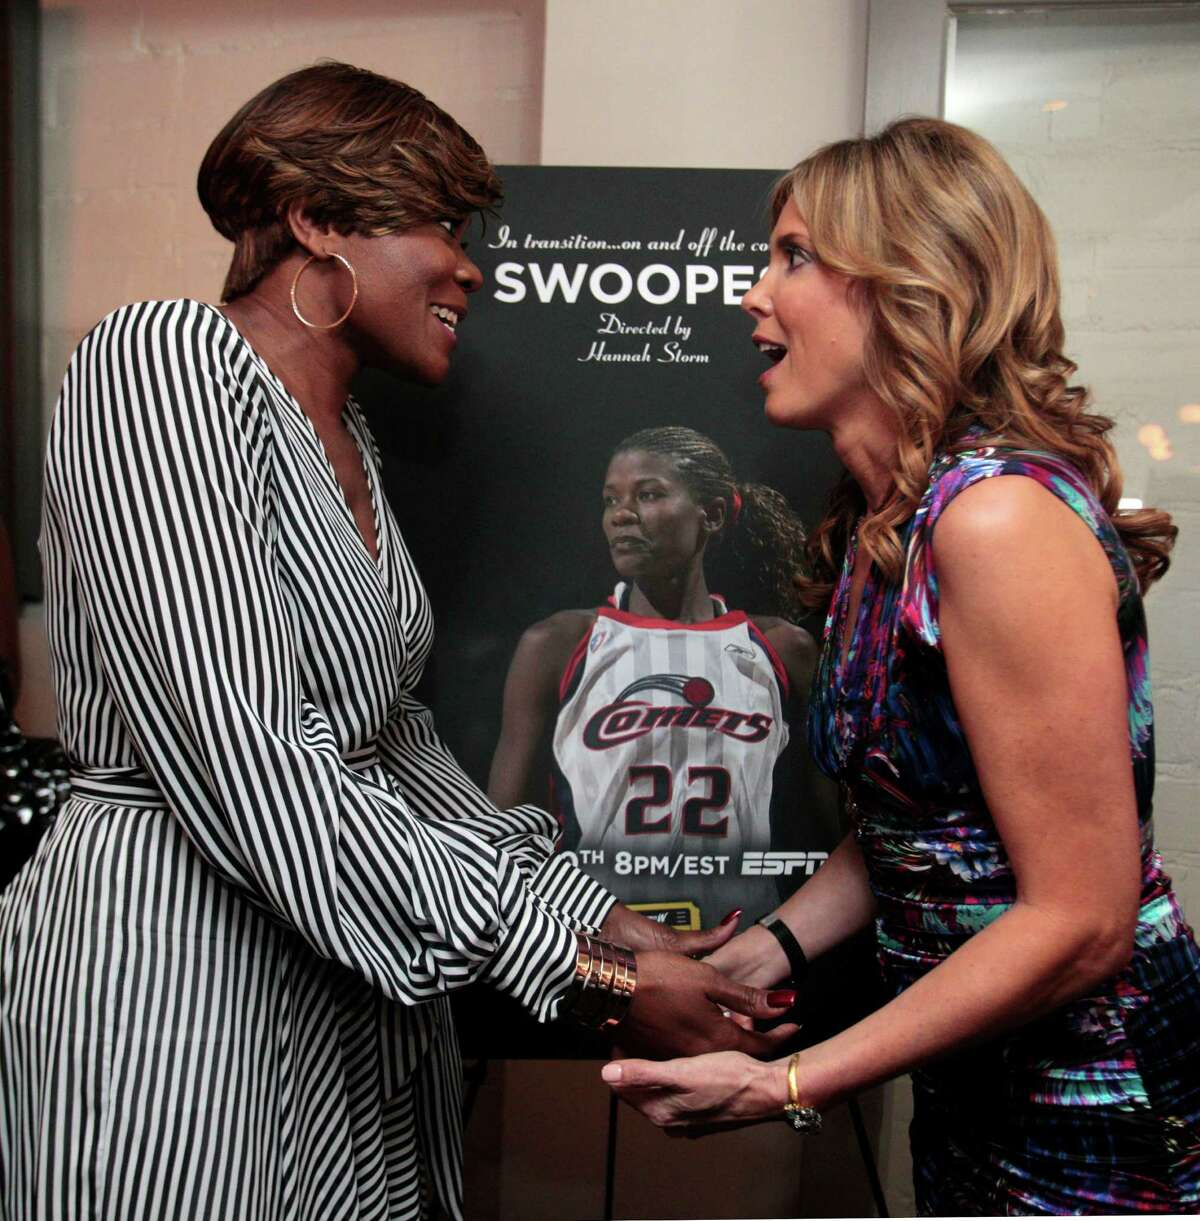 """Former WNBA and Houston Comets star Sheryl Swoopes and ESPN sports journalist and broadcaster Hannah Storm hold hands as they both take a moment in front of the movie poster for """"Swoopes"""" during a reception Wednesday, July 24,2013 at Brasserie 19 in Houston, Texas. Storm directed the ESPN documentary about former WNBA and Comets star Sheryl Swoopes, The film, part of ESPN's """"Nine for IX series"""", airs next week on ESPN. Tonight, both Storm and Swoopes were on hand at a special screening at River Oaks Theatre in Houston, Texas."""